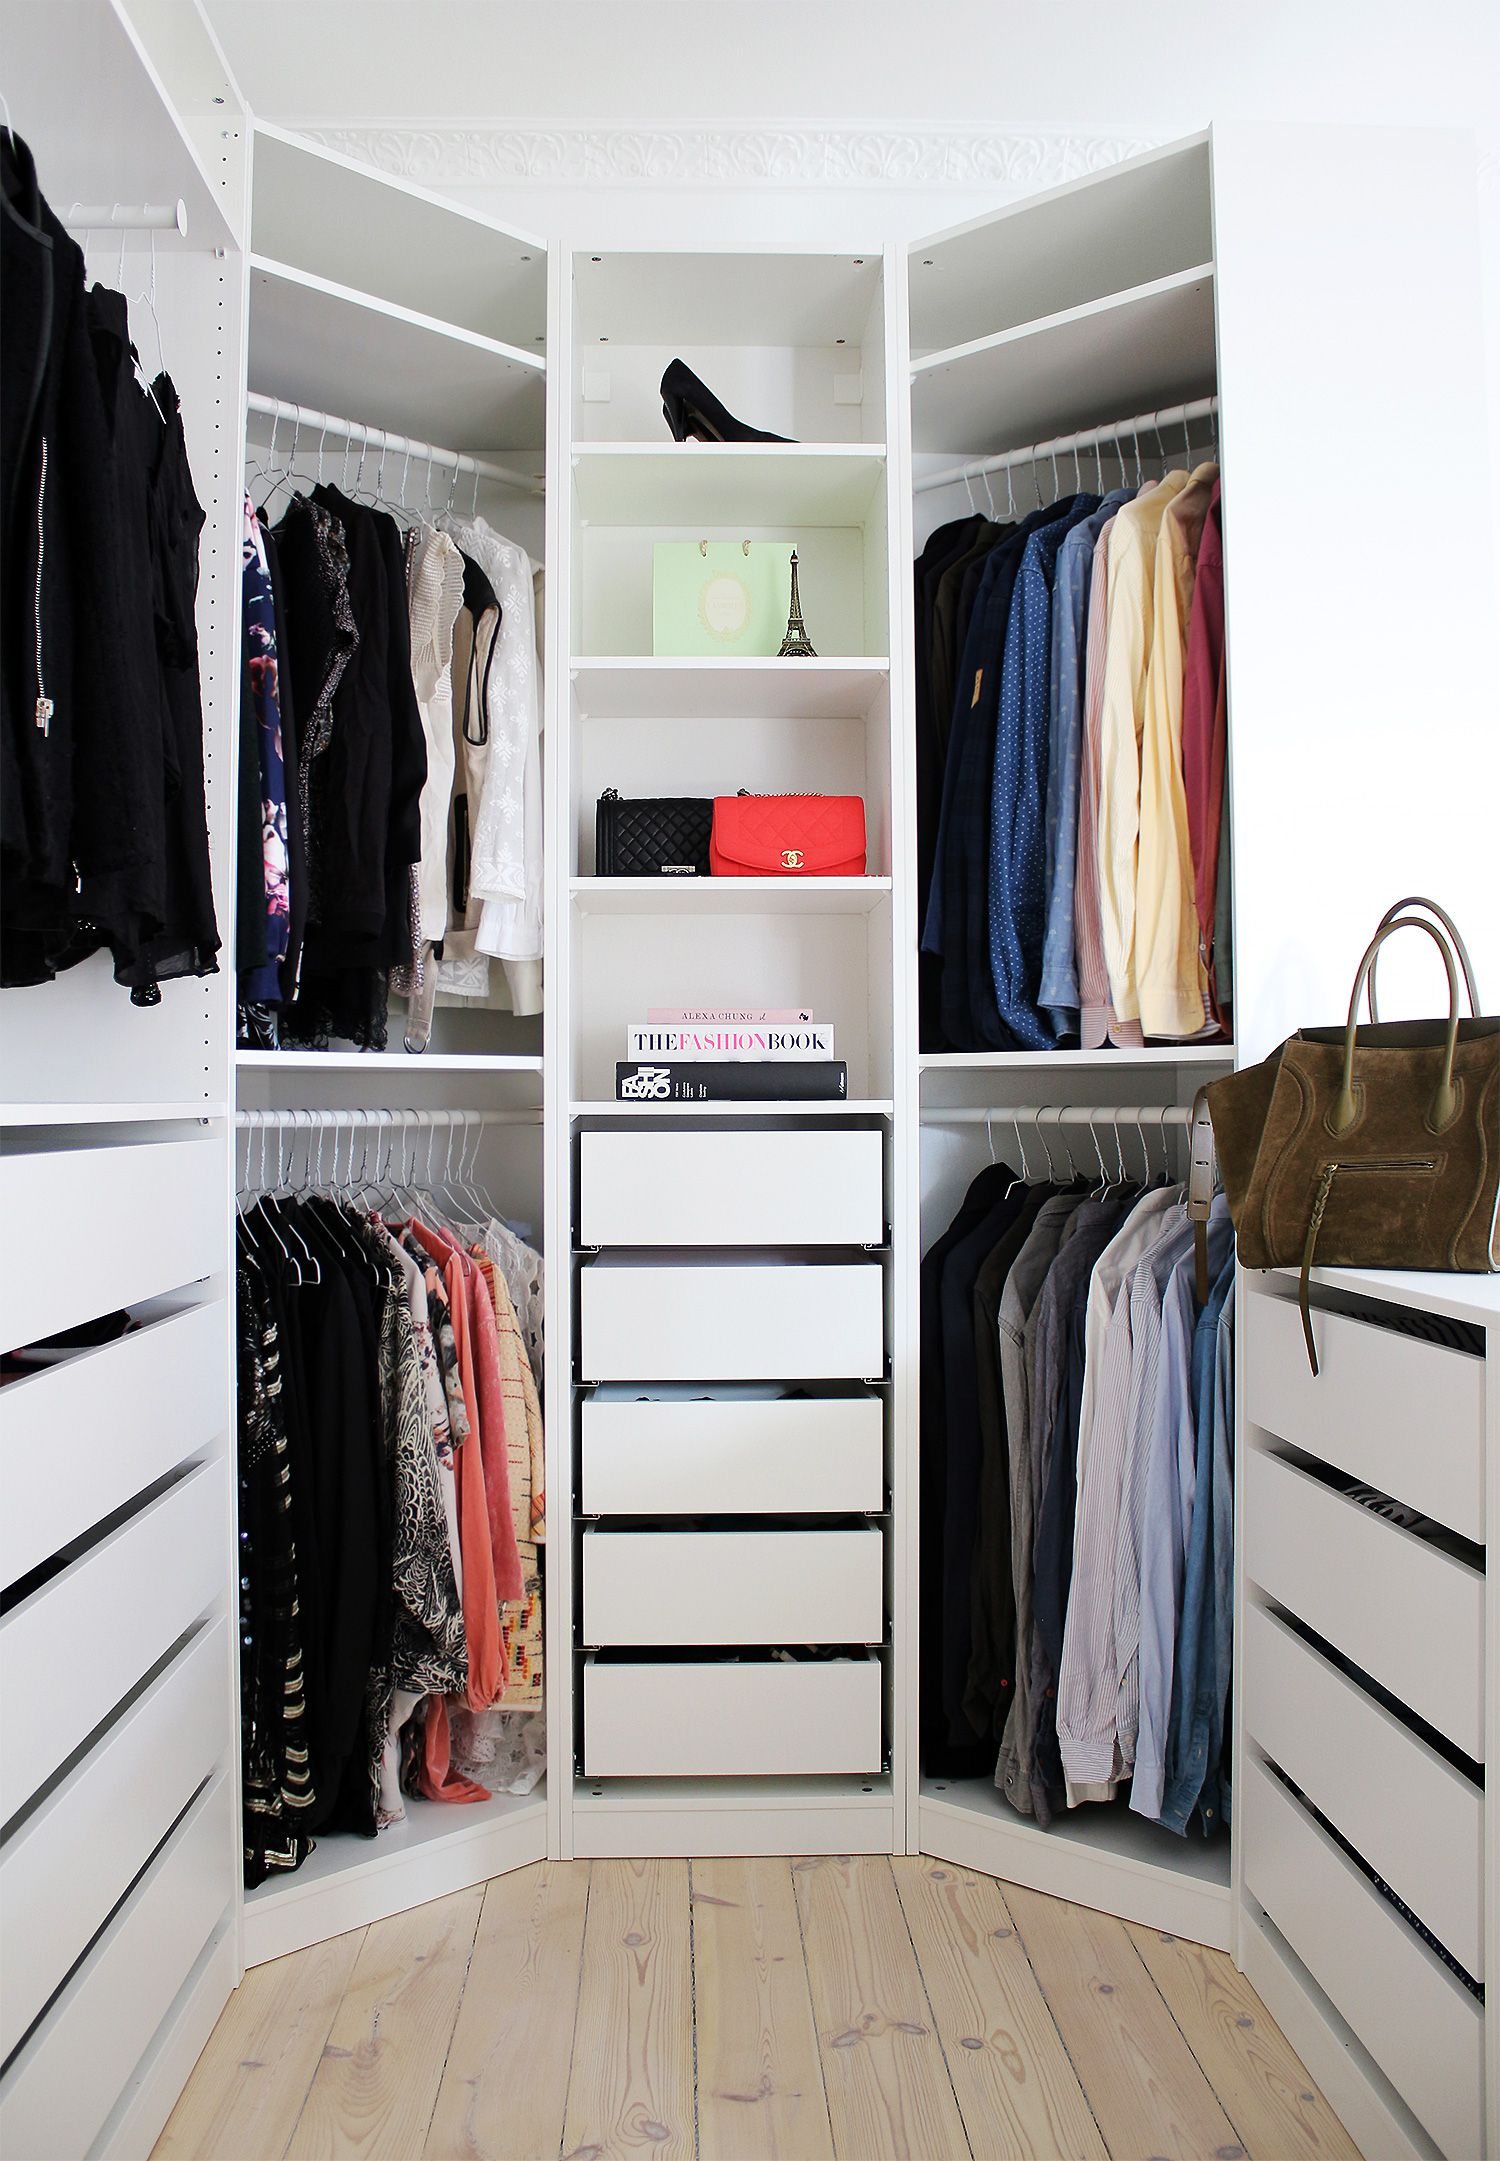 Photo Walk-in Garde-robe Walk In Closet Garderobe Tøjopbevaring Ikea Pax 2x